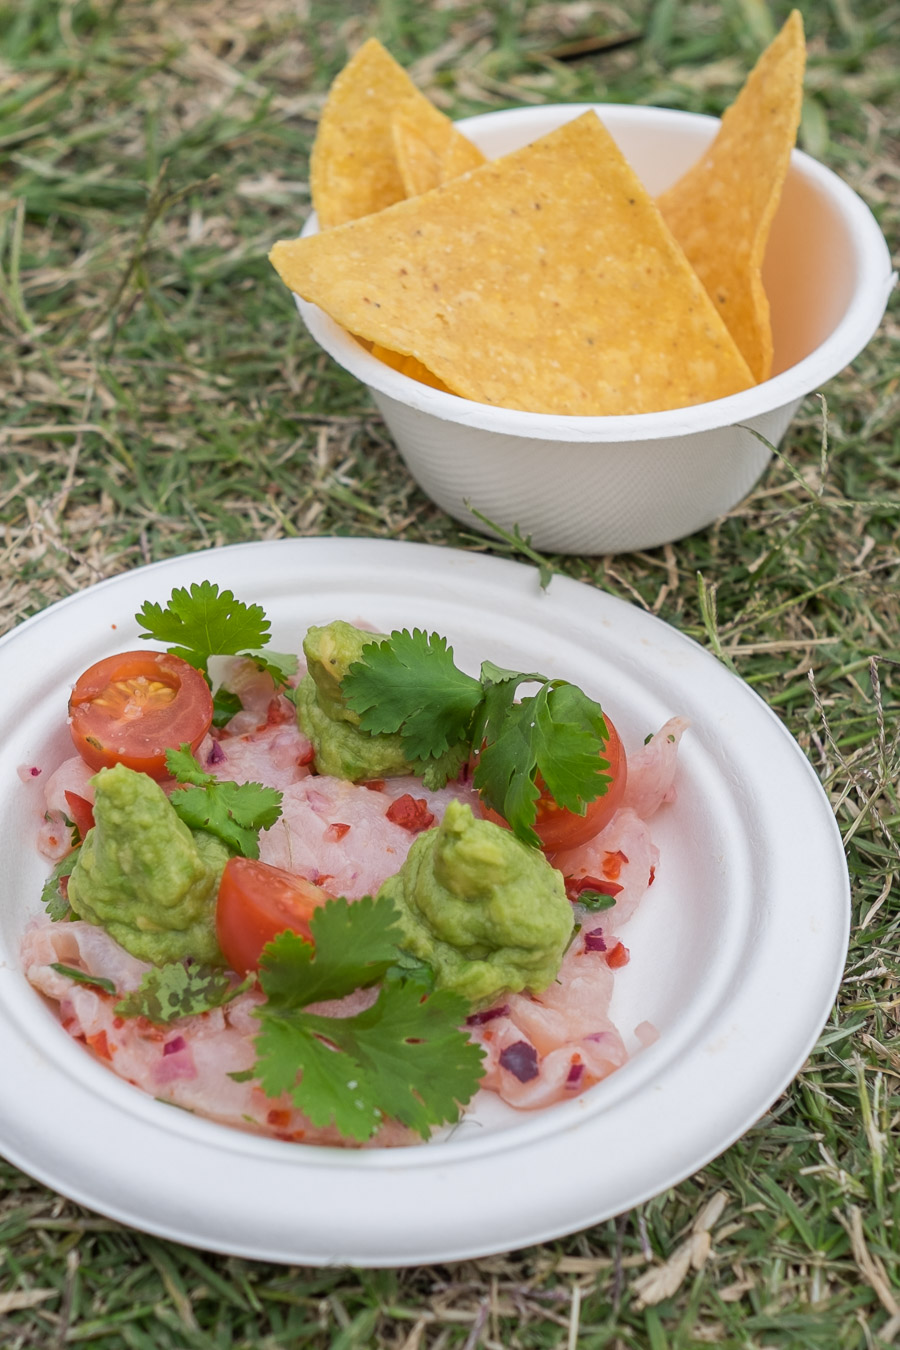 Asado: Ceviche - market fish, avocado, coriander, lime, chilli, cherry tomatoes, house tortilla chips (12 crowns).